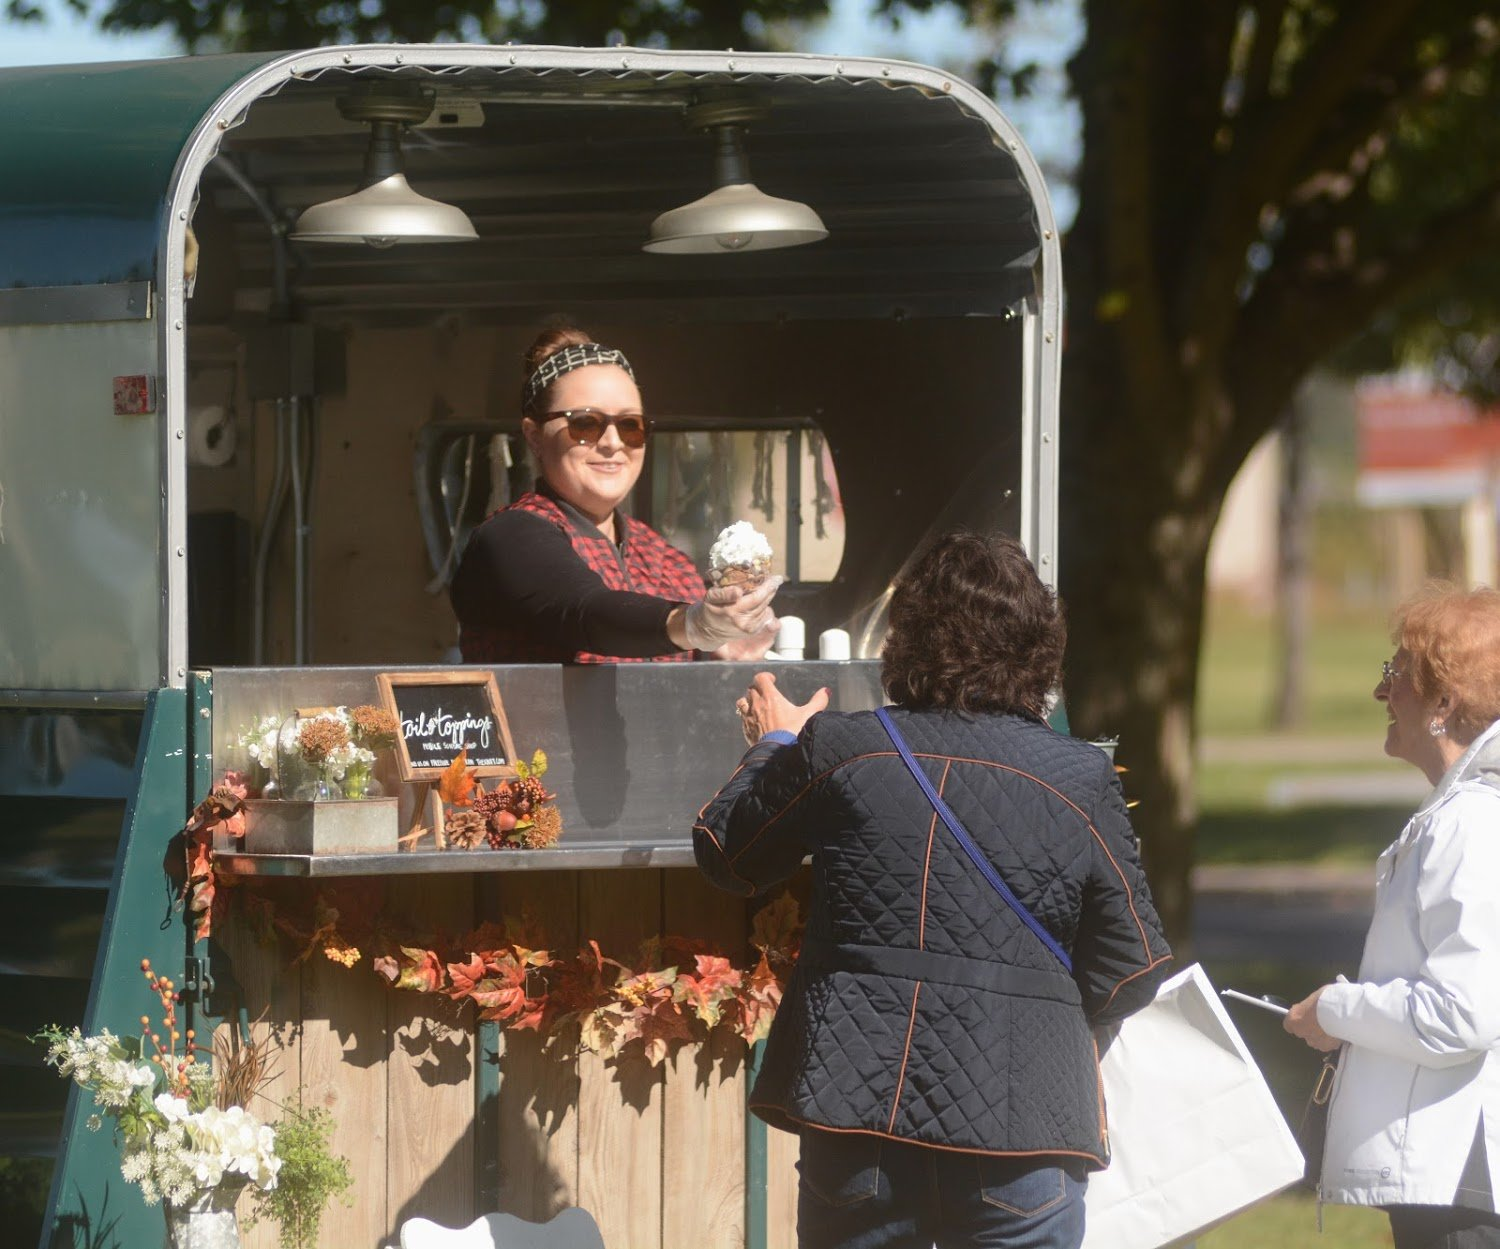 Alyssa Brement owner of Tails and Toppings hands out a yummy ice cream dish at Locktoberfest.